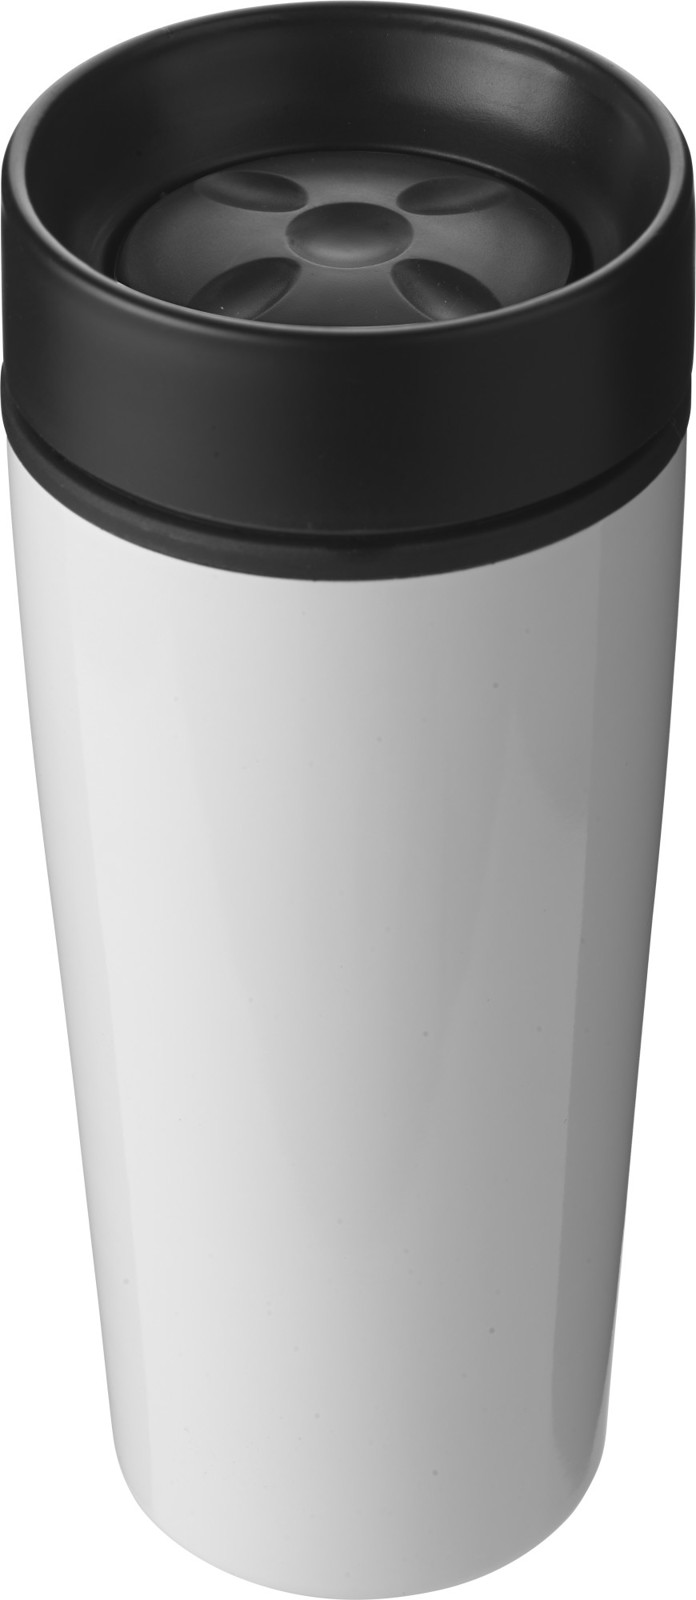 Stainless steel double walled travel mug - White